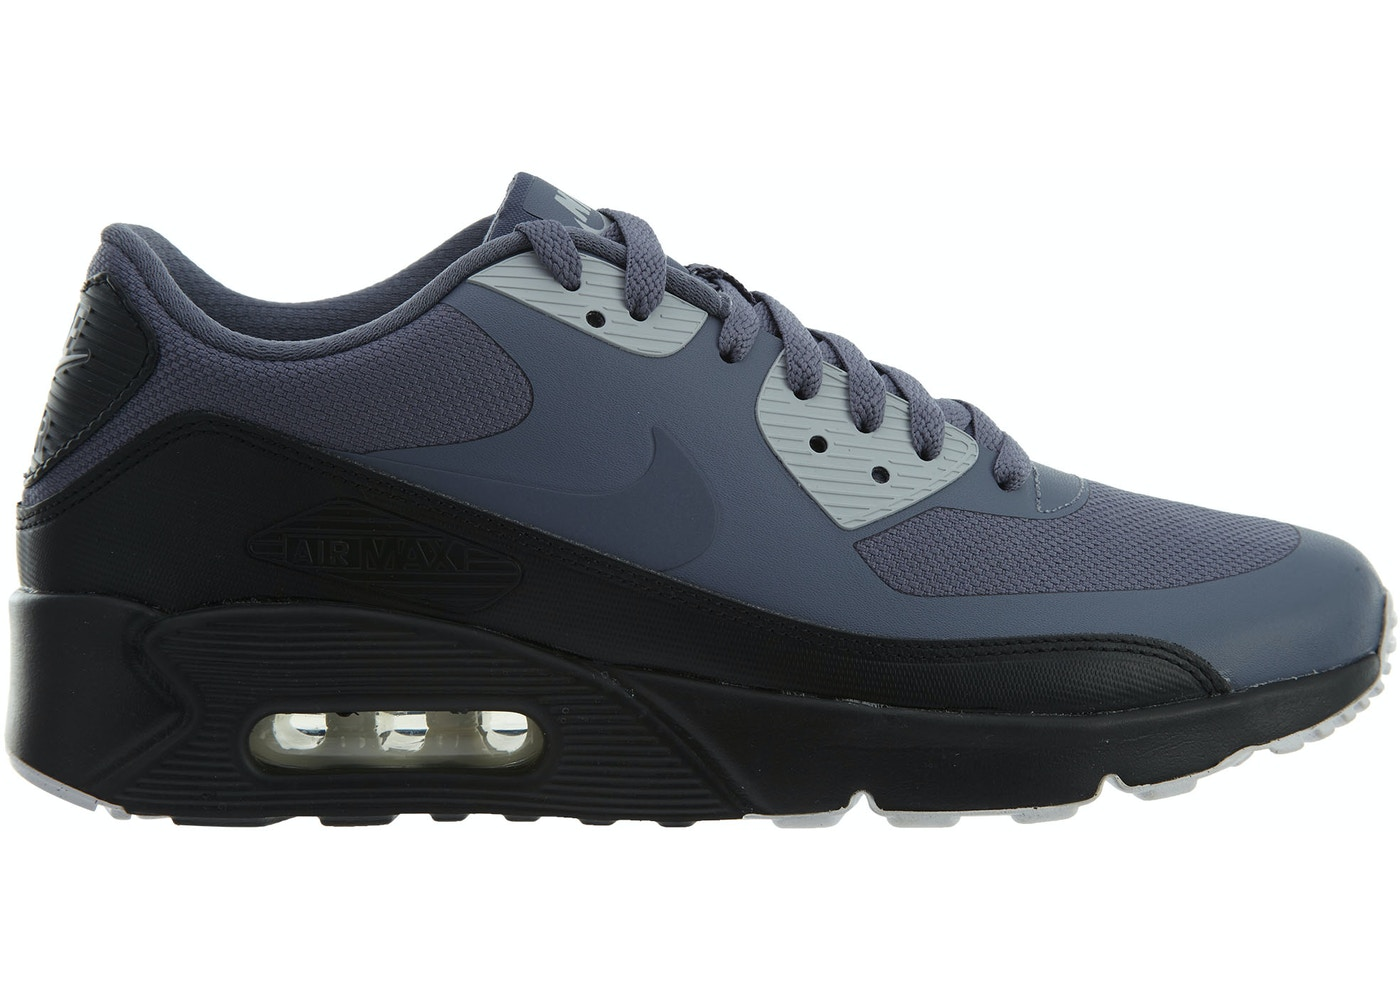 b68f581f48 Sell. or Ask. Size: 13. View All Bids. Air Max 90 Ultra 2.0 Essential ...